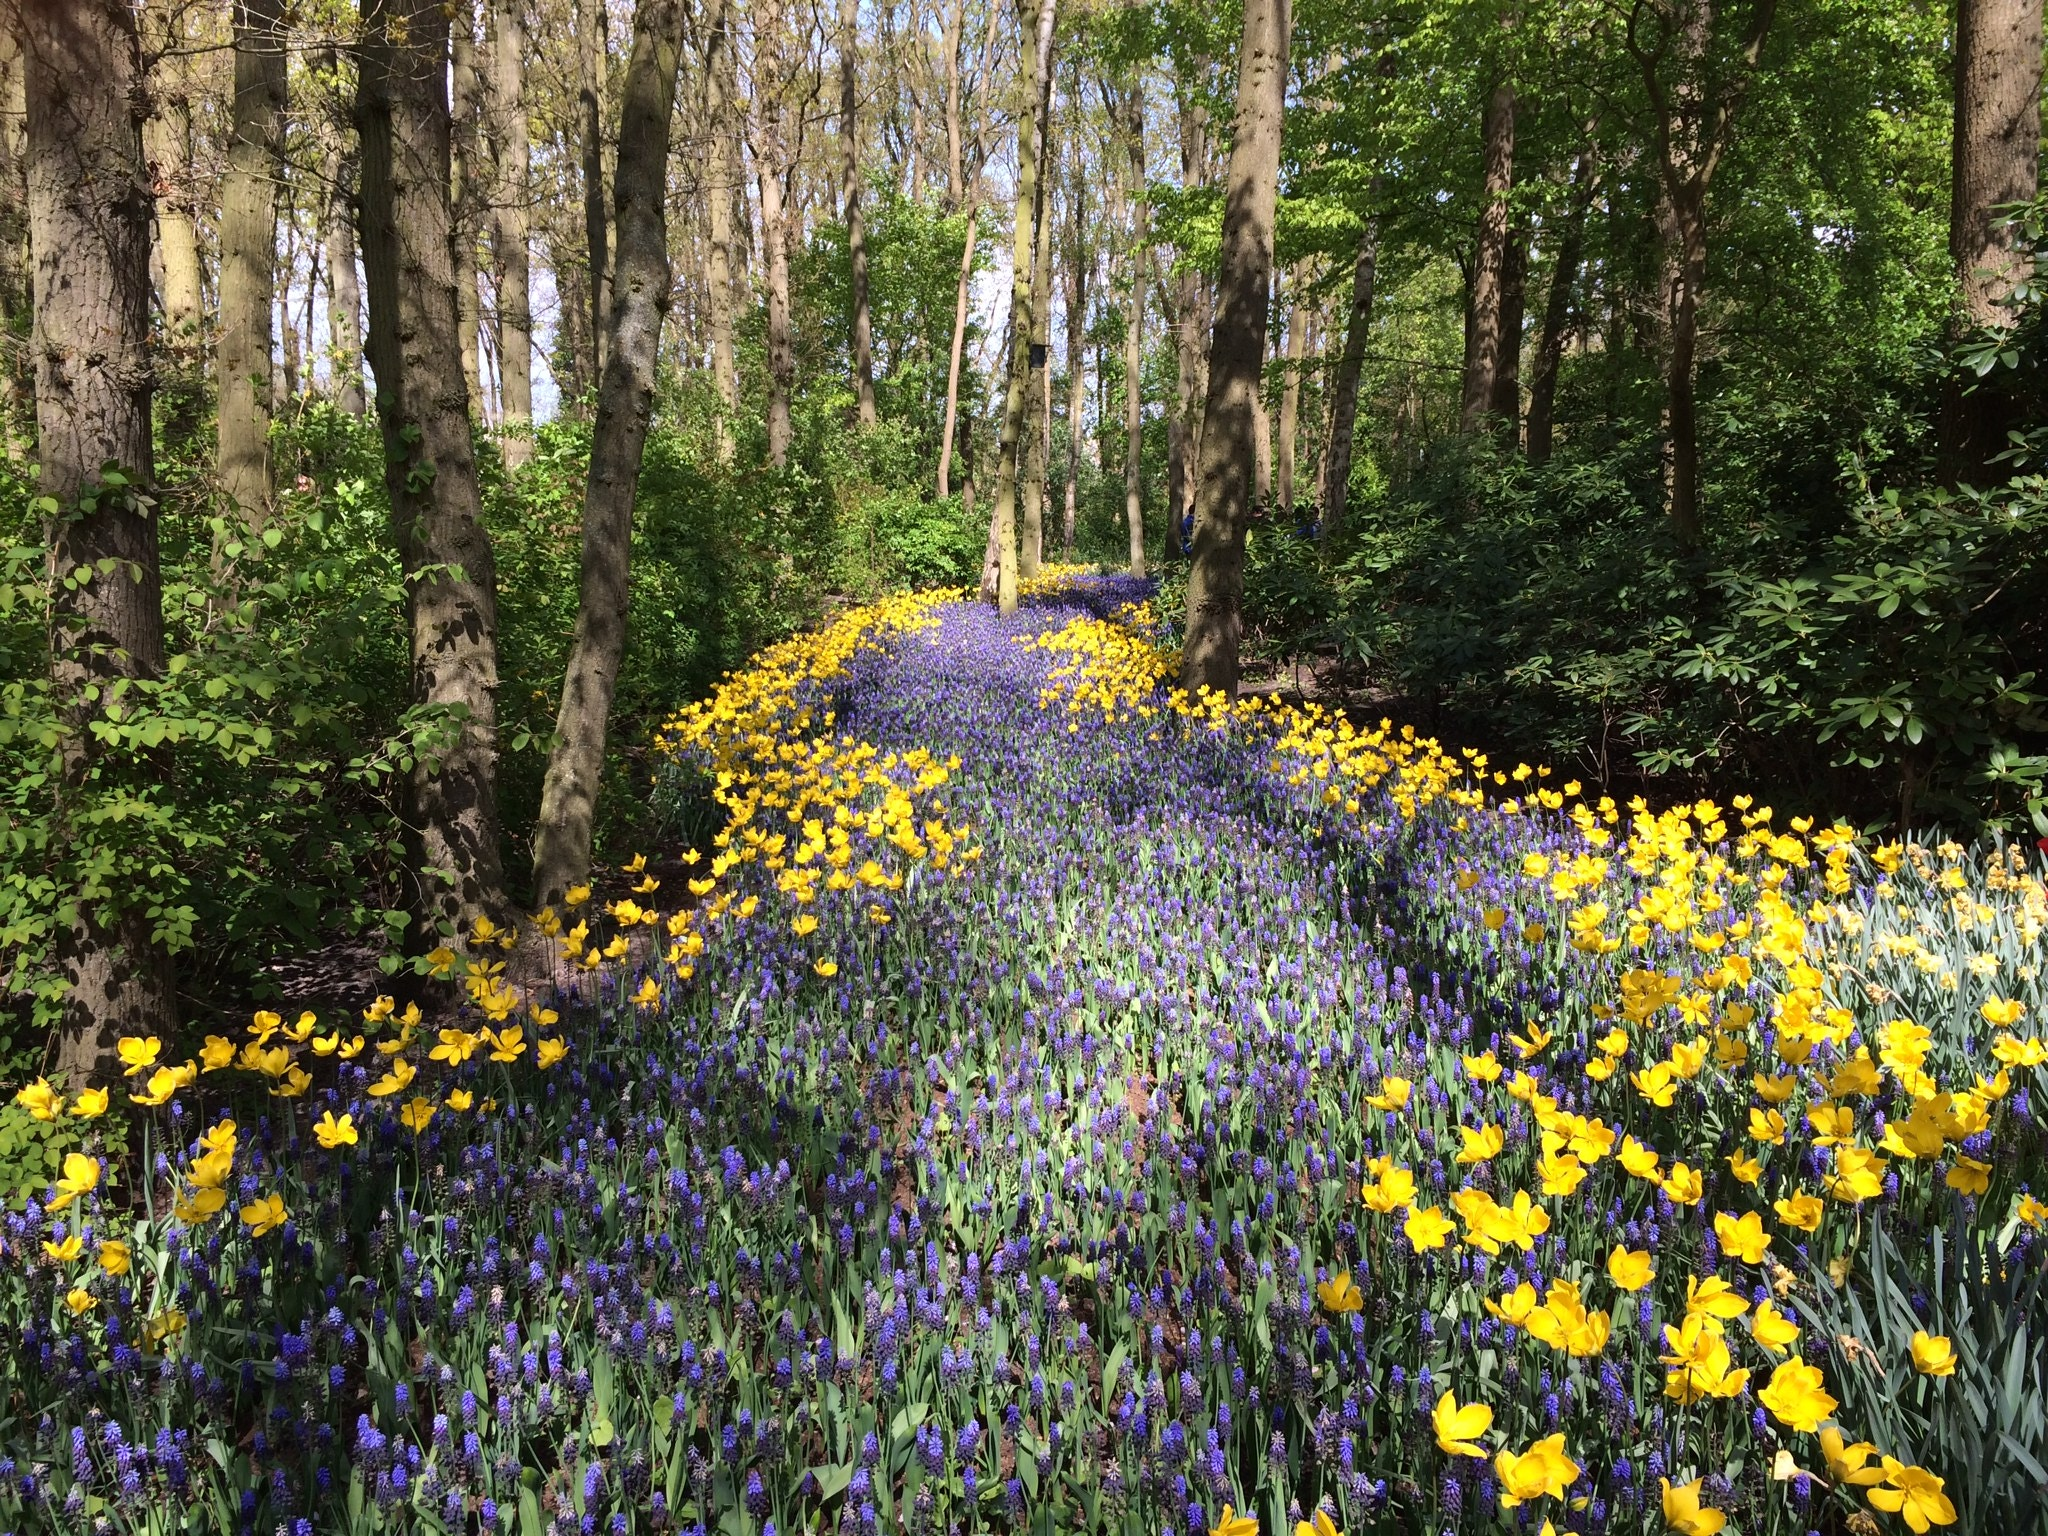 A woodland of green trees with a pathway running through the centre made up of purple hyacinth surrounded on both sides by yellow daffodils